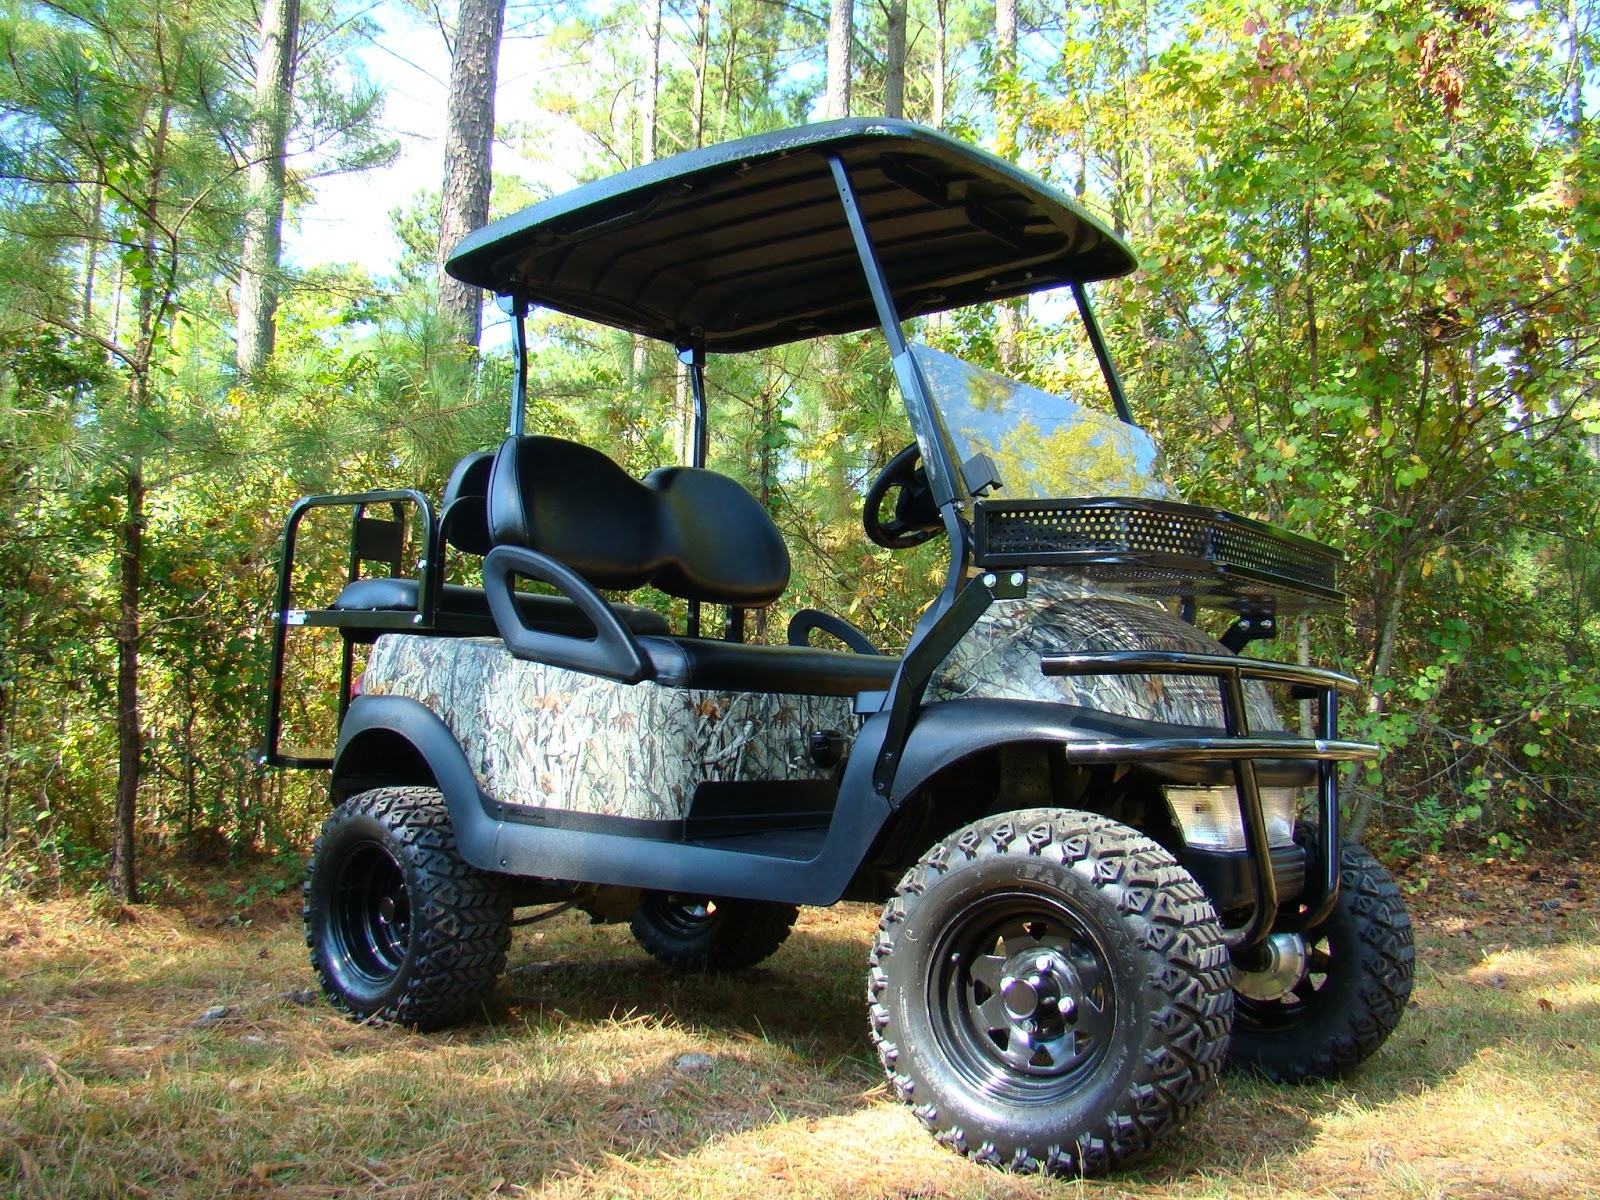 King of Carts - New, Used, Electric & Gas Golf Carts For Sale in SC Ezgo Golf Cart Winch Mounts on golf cart spare tire mount, golf cart spoiler, golf cart step plate, golf cart fire extinguisher, golf cart tachometer mount, golf cart brush guards, golf cart bug shield, golf cart skid plate, golf cart tie down, golf cart gps mount, golf cart roof rails, golf cart light kit, golf cart dog box, golf cart sun shade, golf cart bed liner, golf cart radio mount, golf cart switch, golf cart repair manual, golf cart scan tool, golf cart muffler,